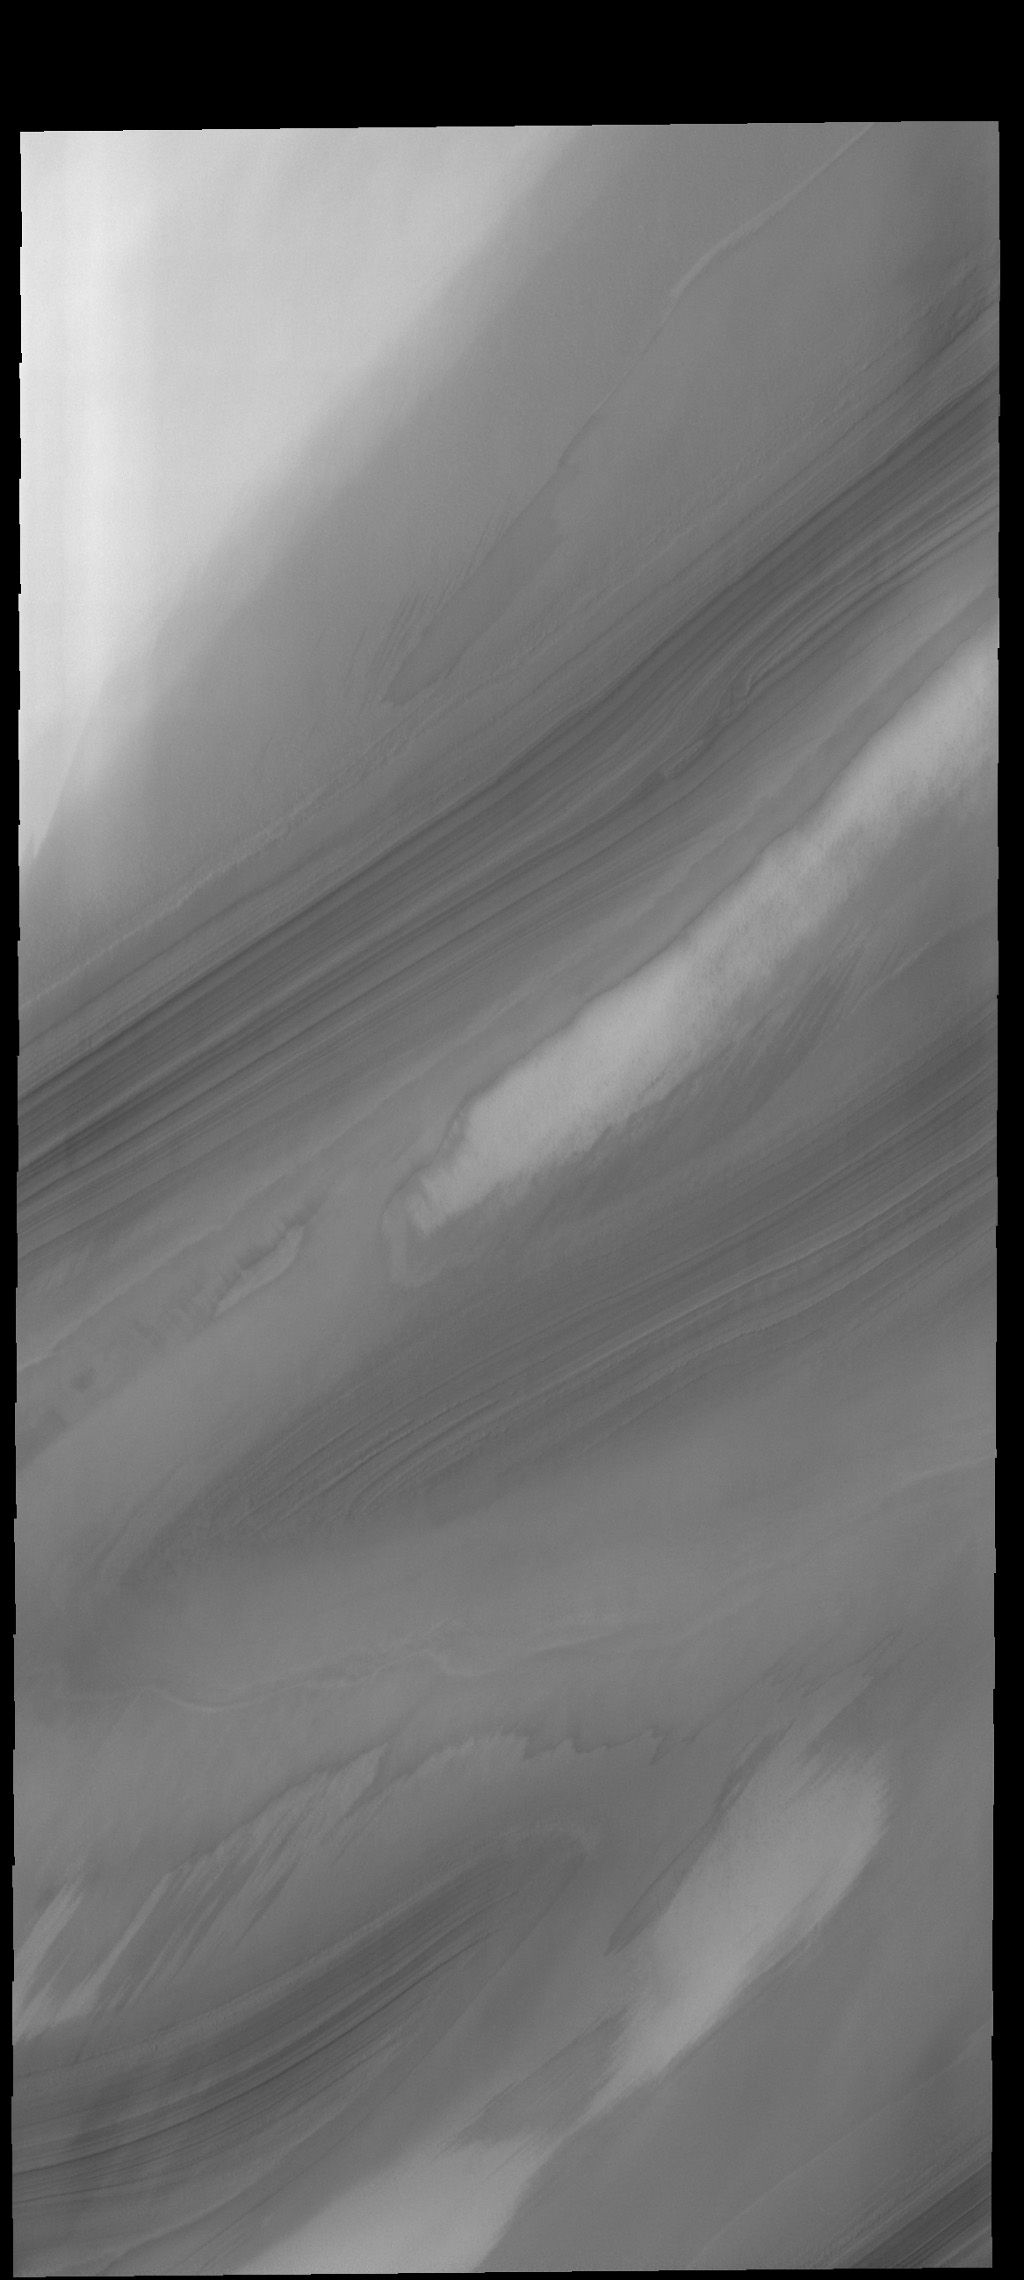 Troughs in the north polar cap reveal the layering of ice and dust, as shown in this image captured by NASA's 2001 Mars Odyssey spacecraft.